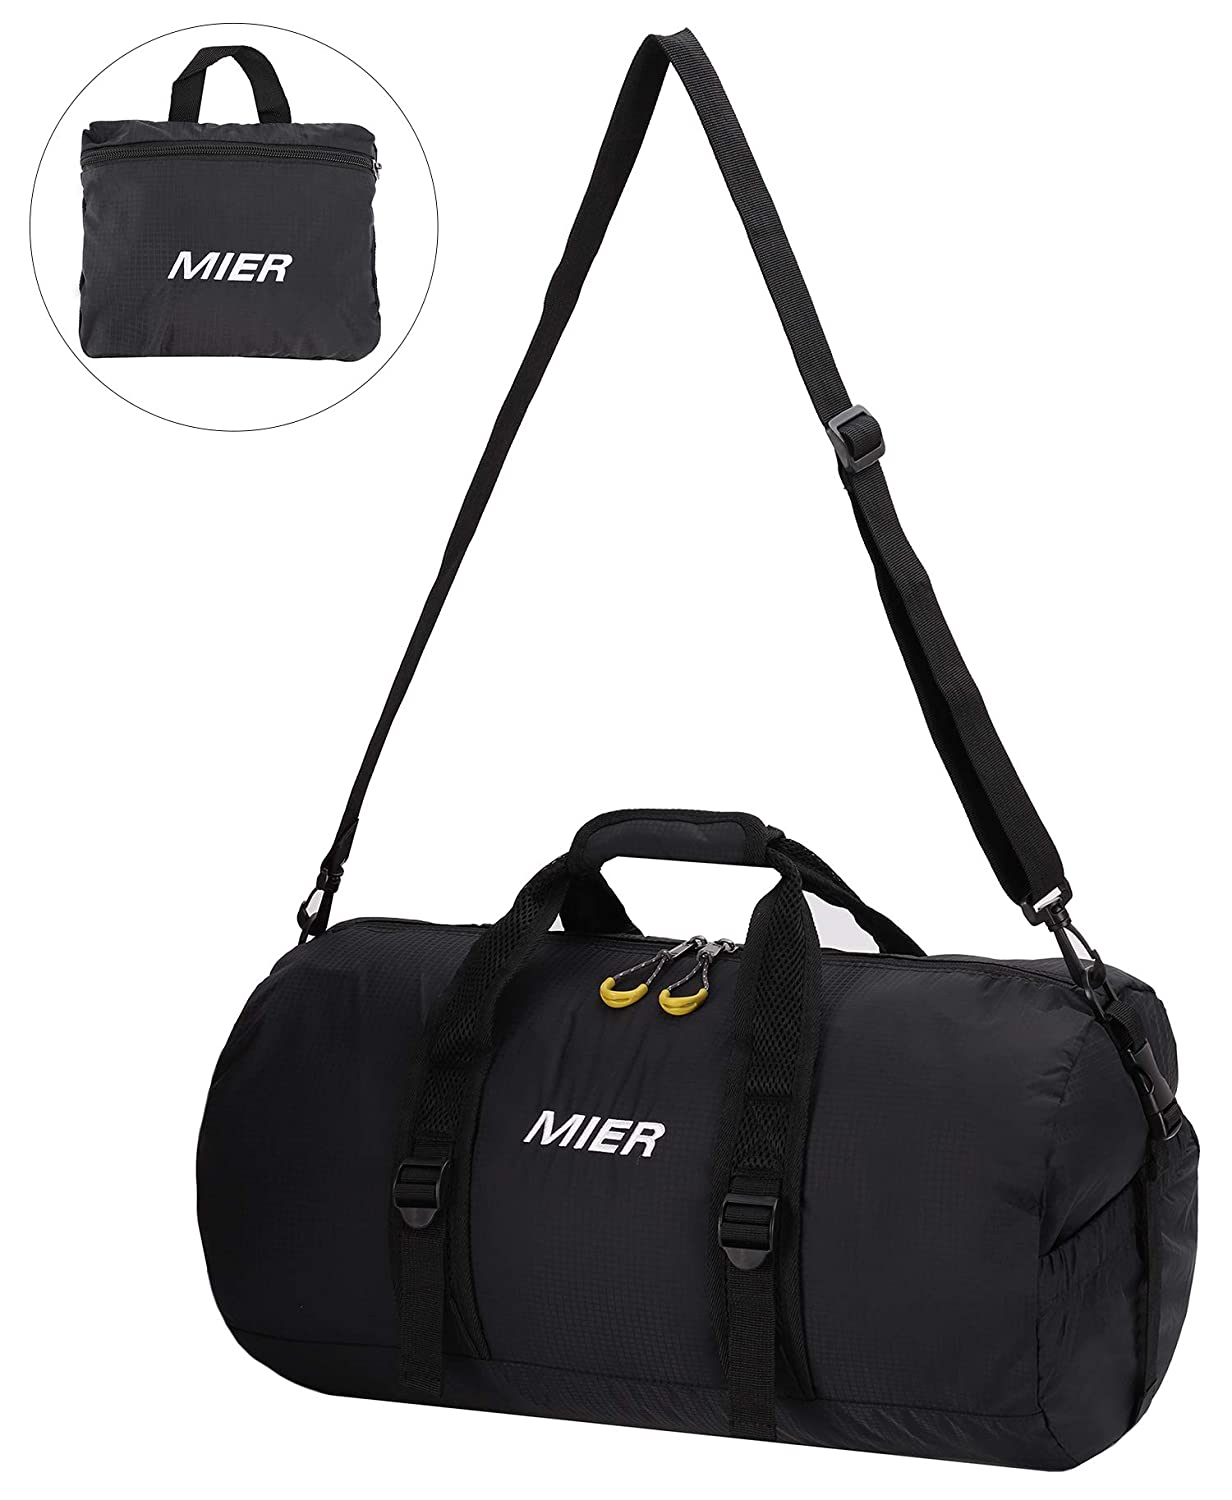 MIER 40L Foldable Barrel Gym Bag Sports Holdall Duffel Bag for Women,  Ladies and Men, Water Resistant Nylon (Black)  Amazon.co.uk  Luggage 0aec5d8d36